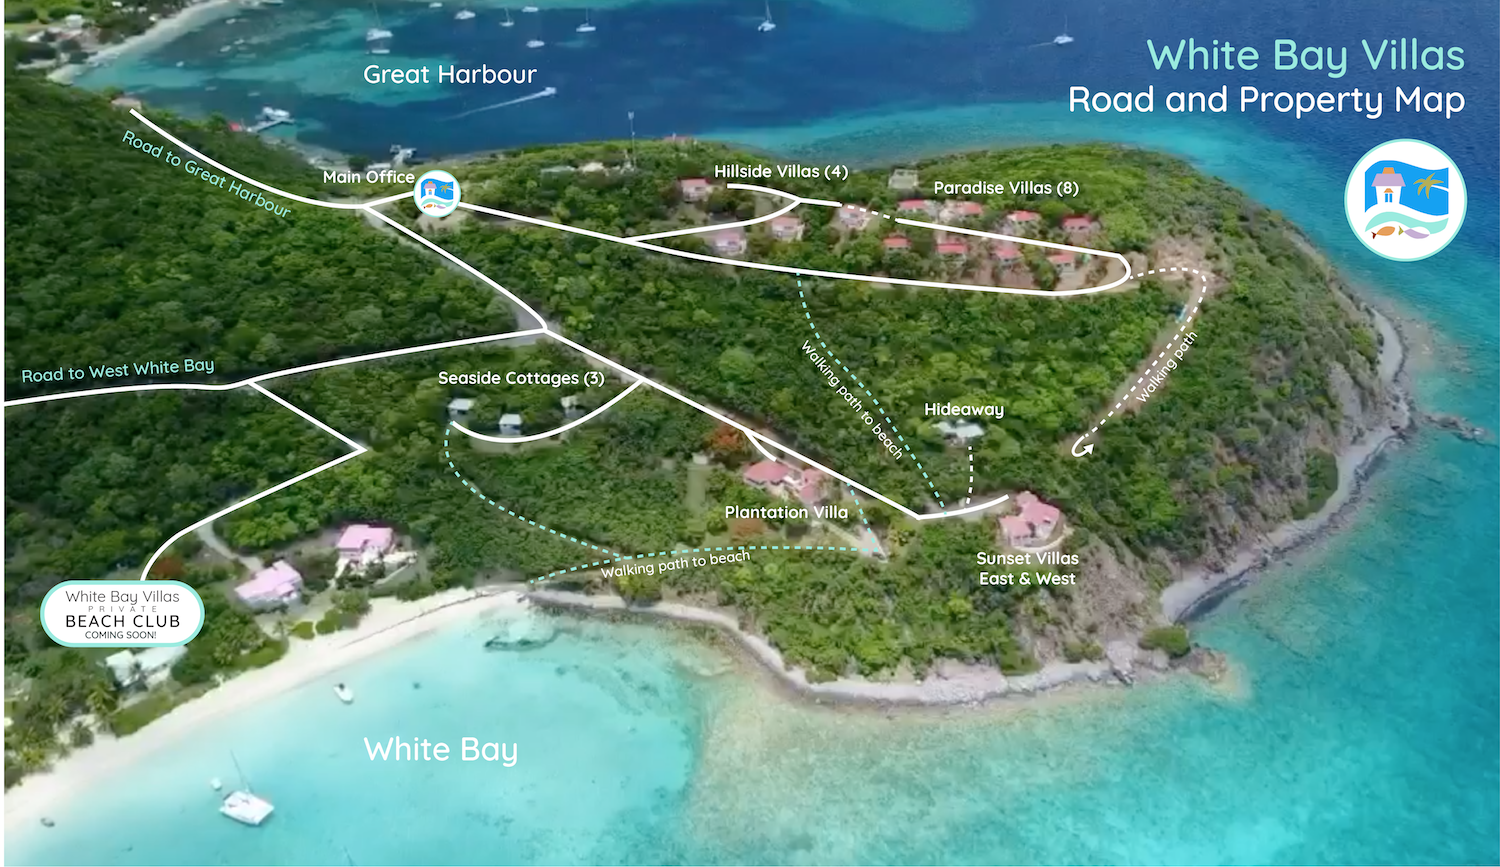 White Bay Villas Property Map